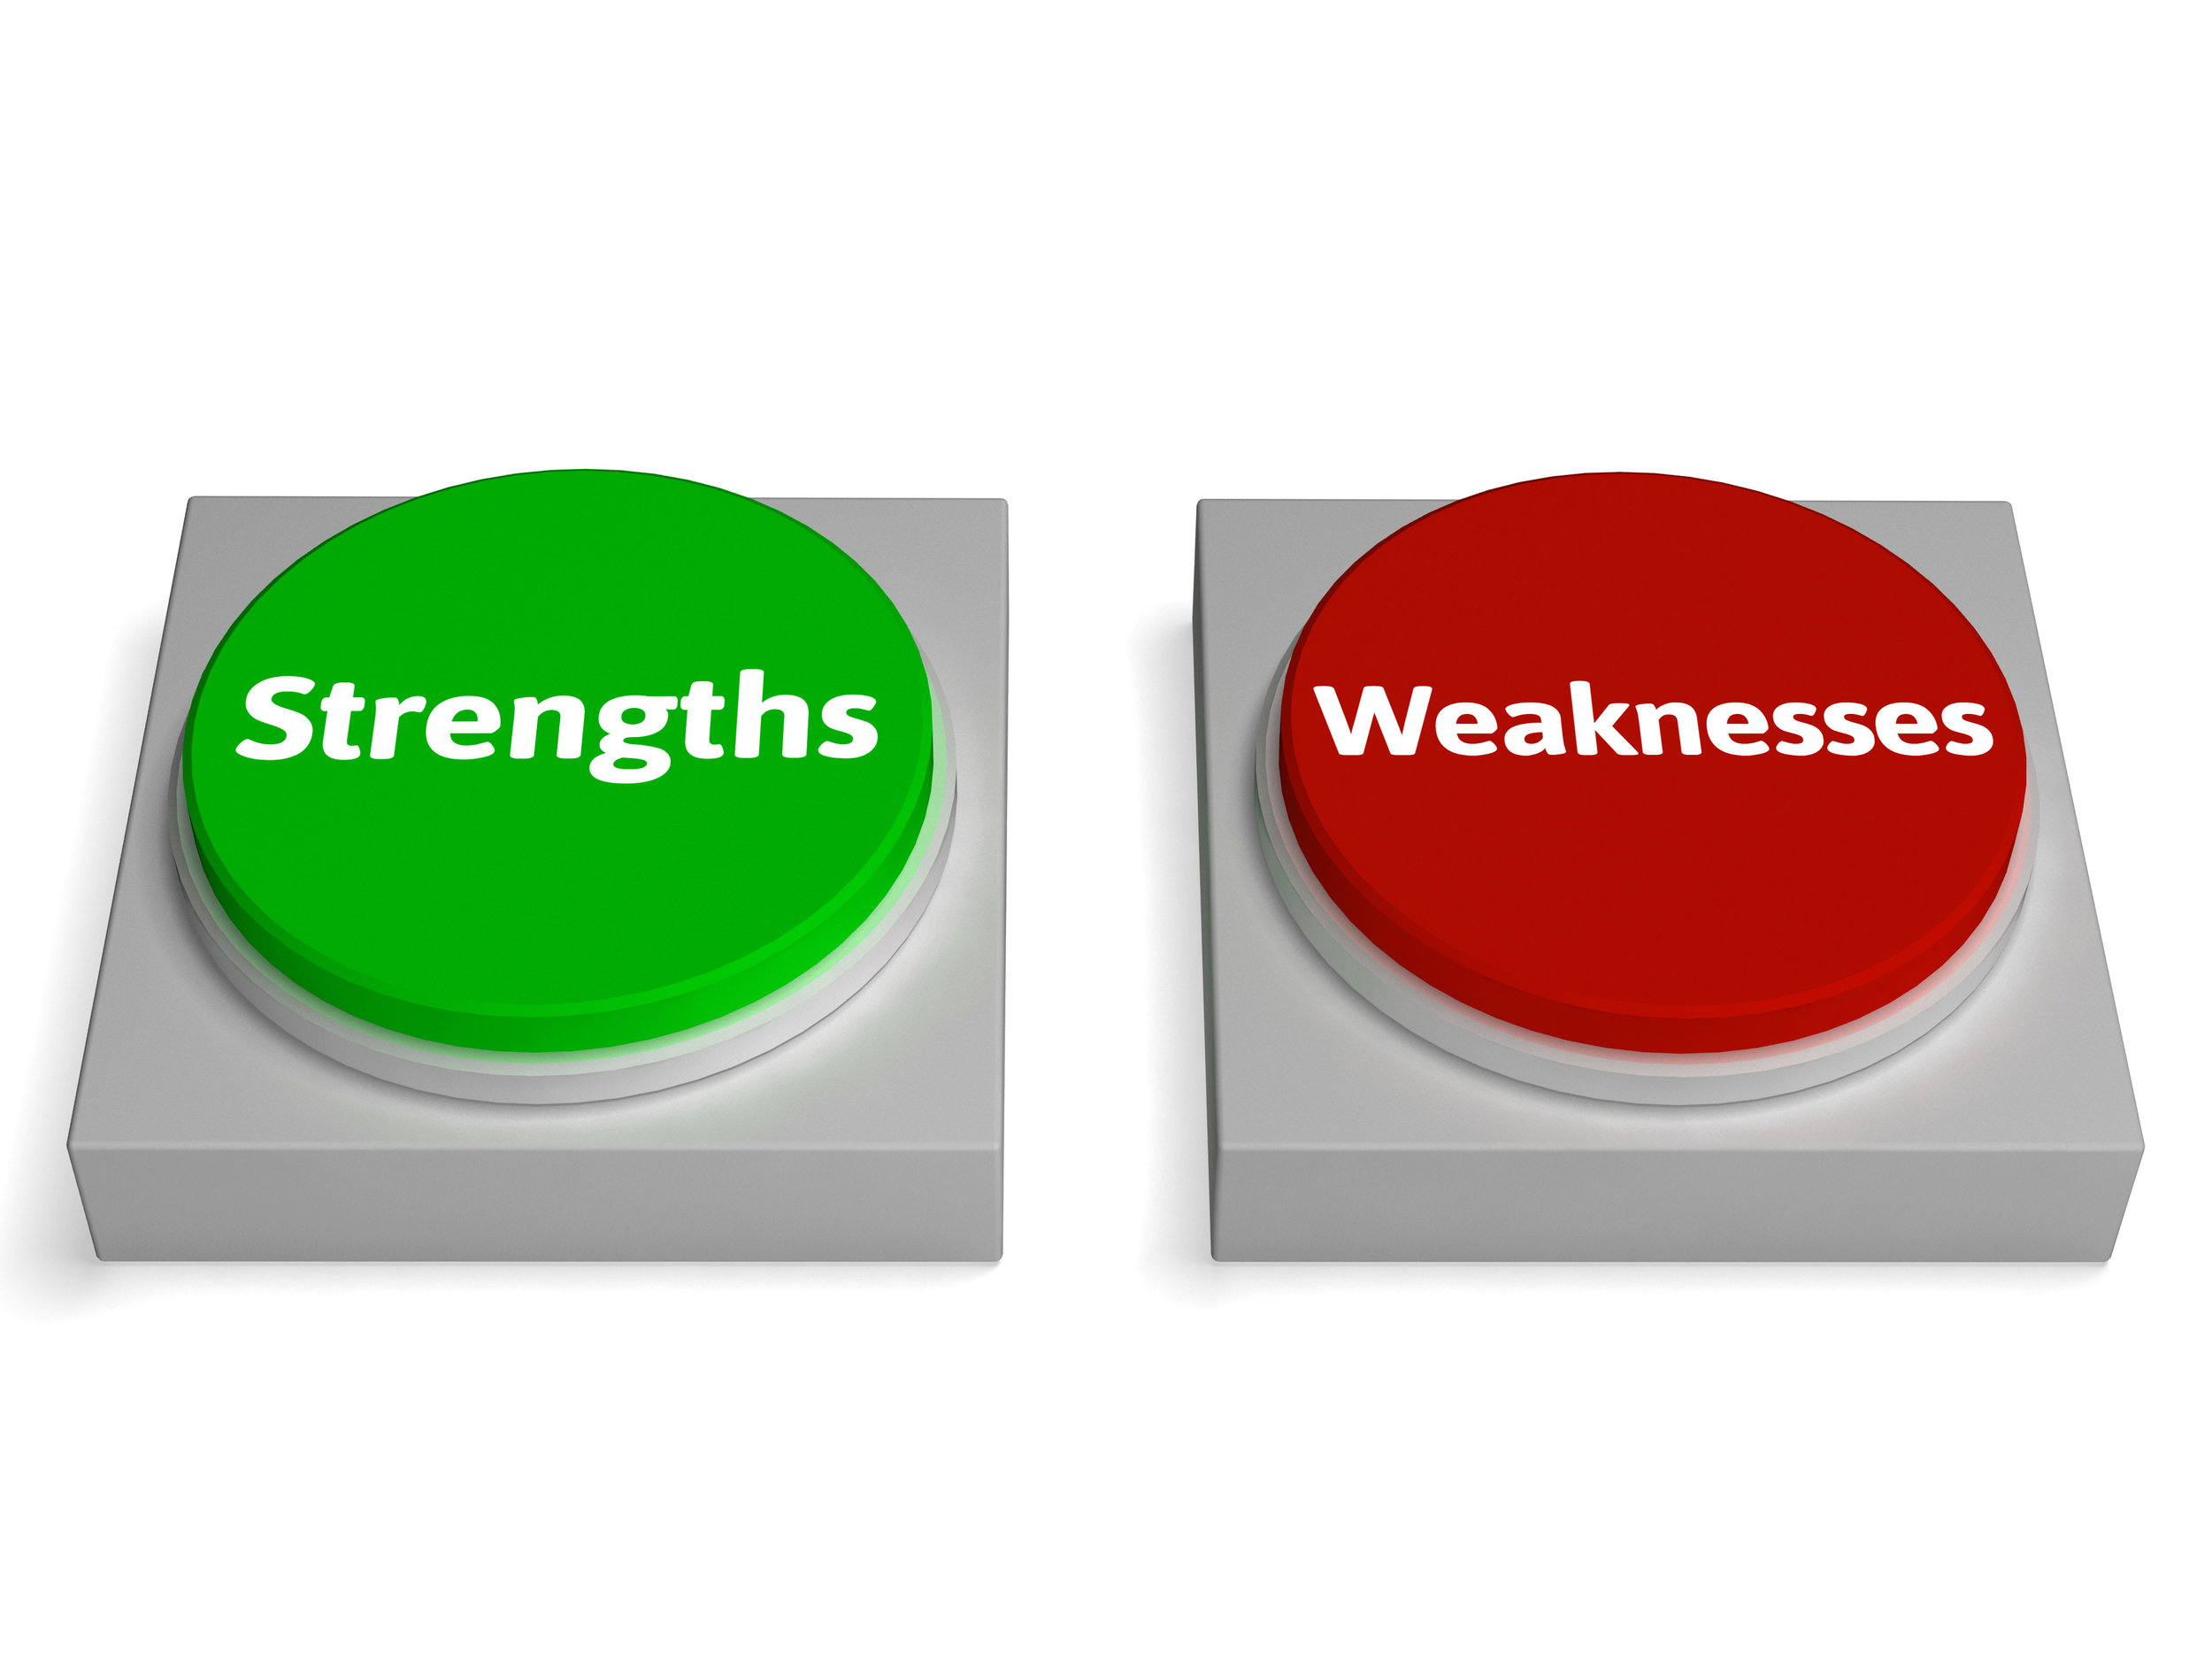 choose to focus on your strengths rather than weaknesses for healthy self-esteem